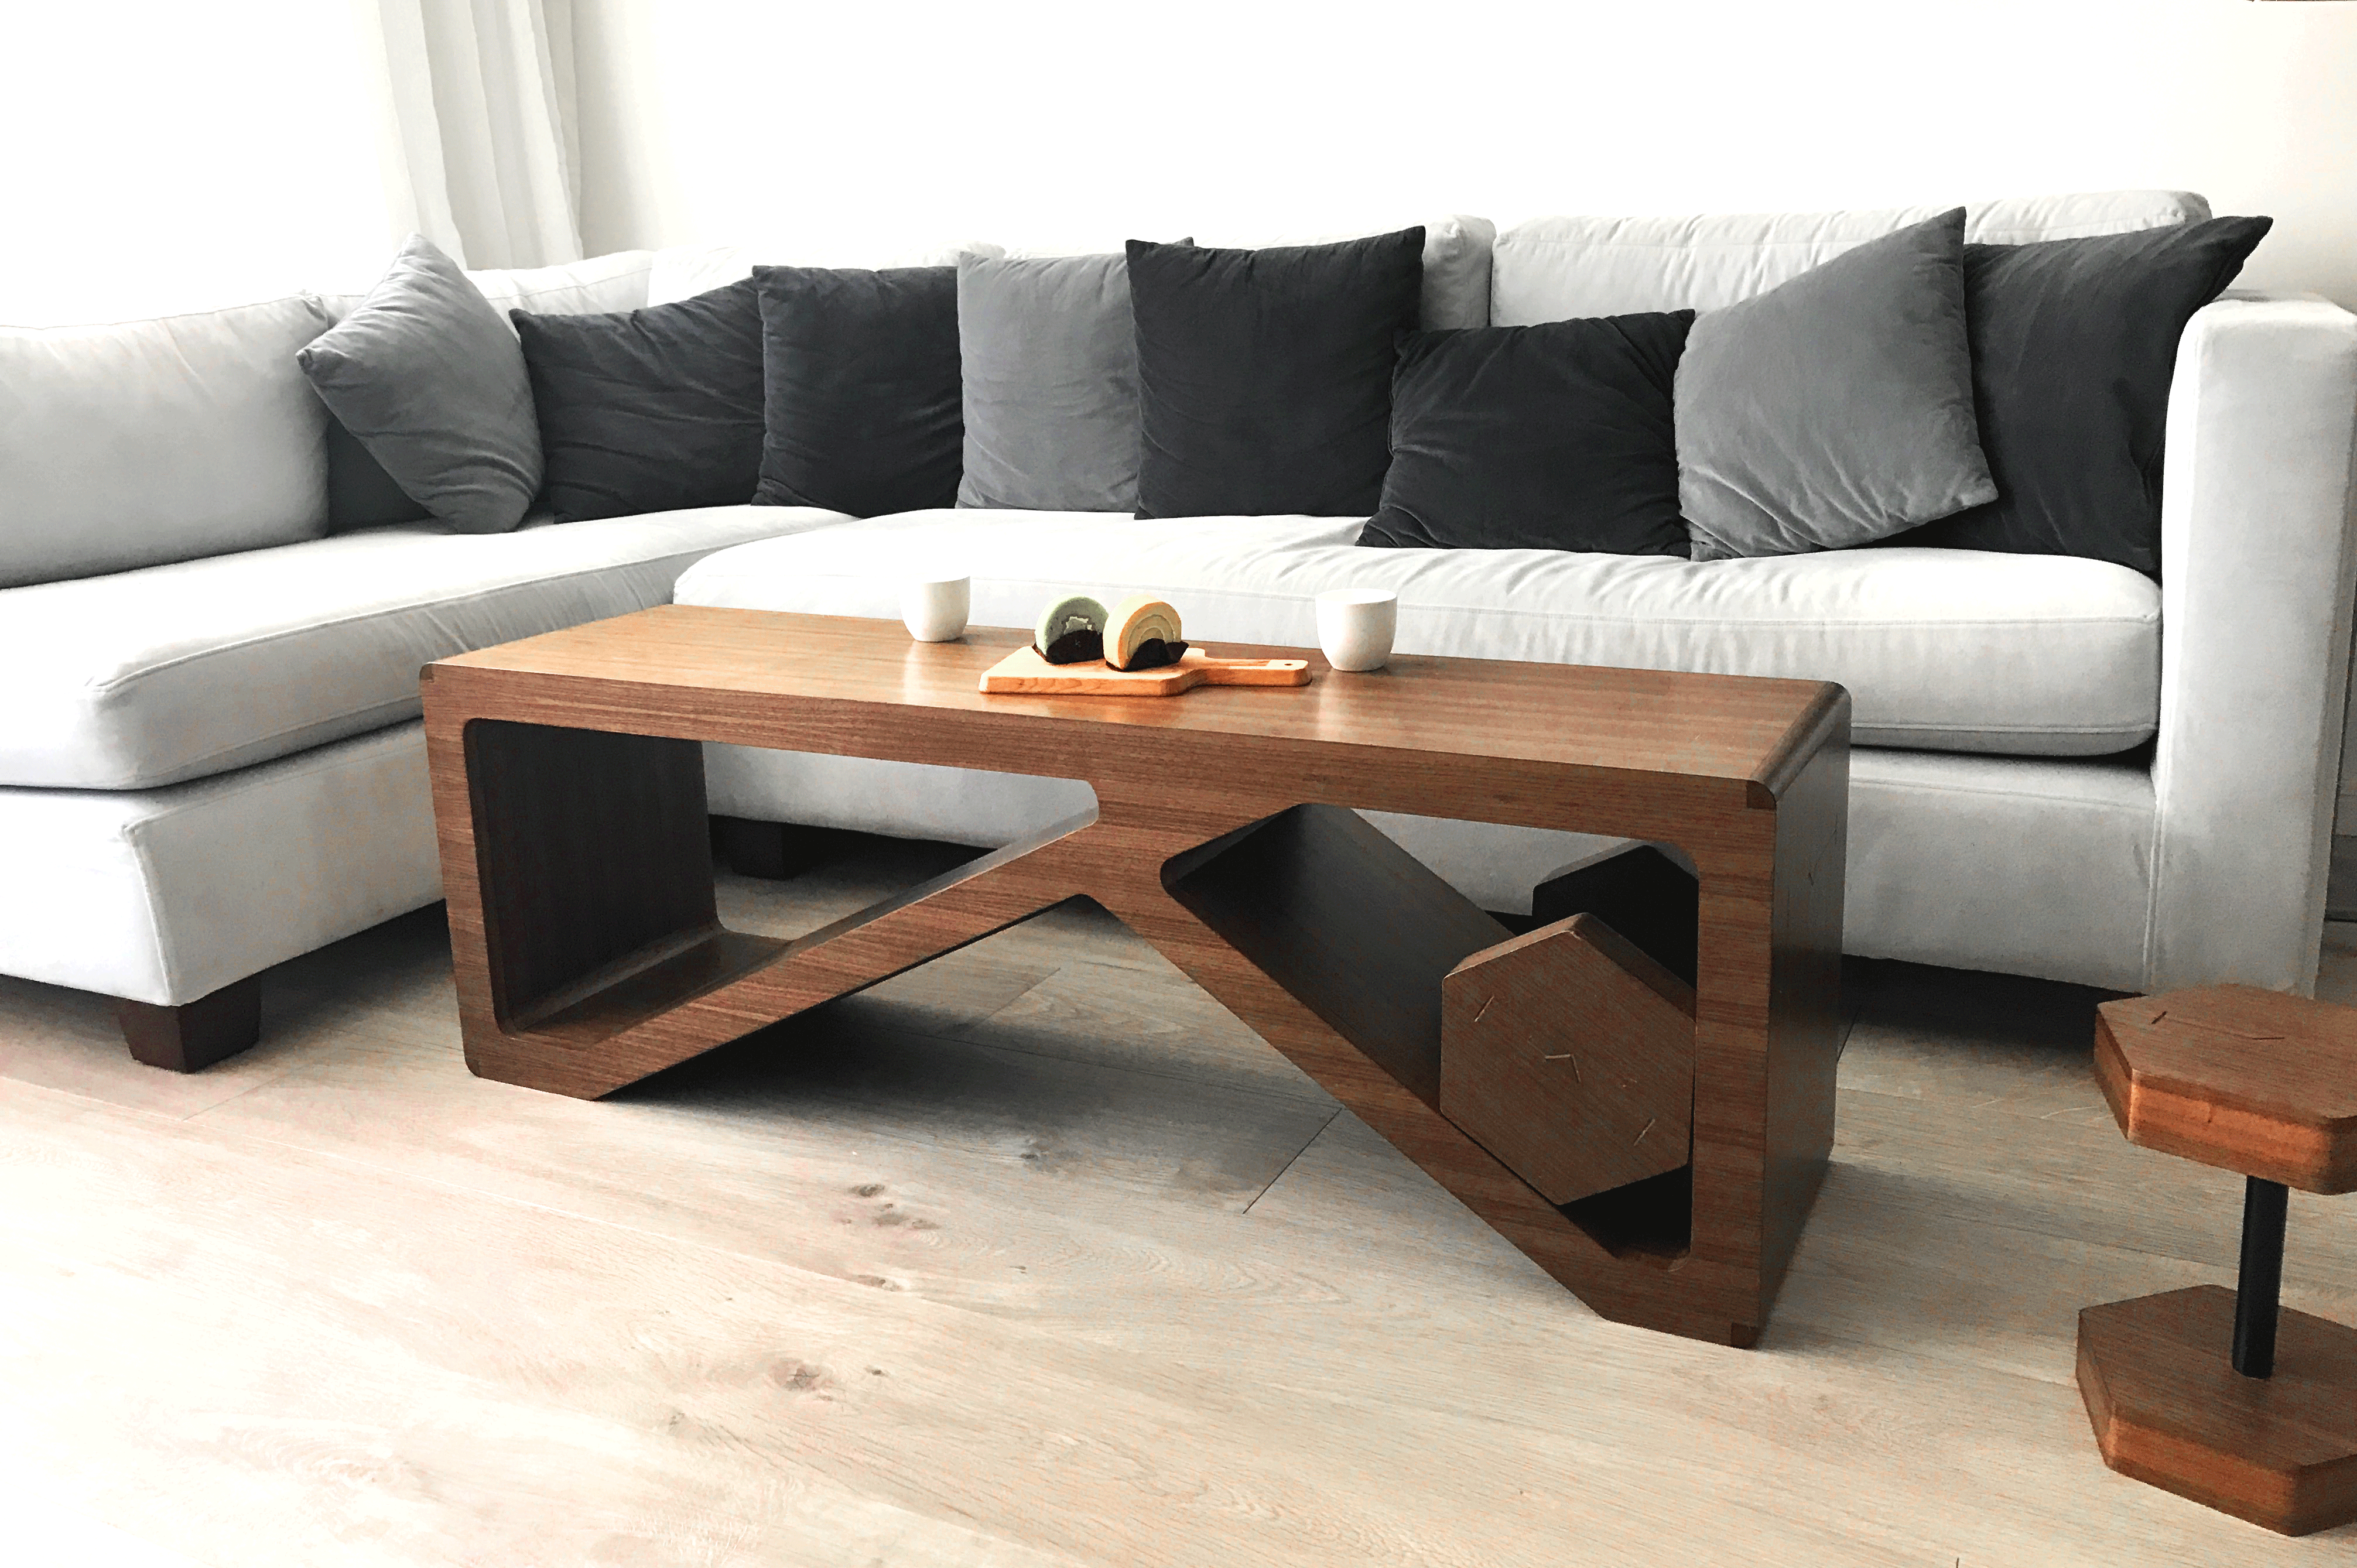 Multifunctional Exercise Bench And Dumbbell Or Coffee Table And Side Table Check Out Our Recent Photos To Know More T Furniture Home Made Gym Coffee Table